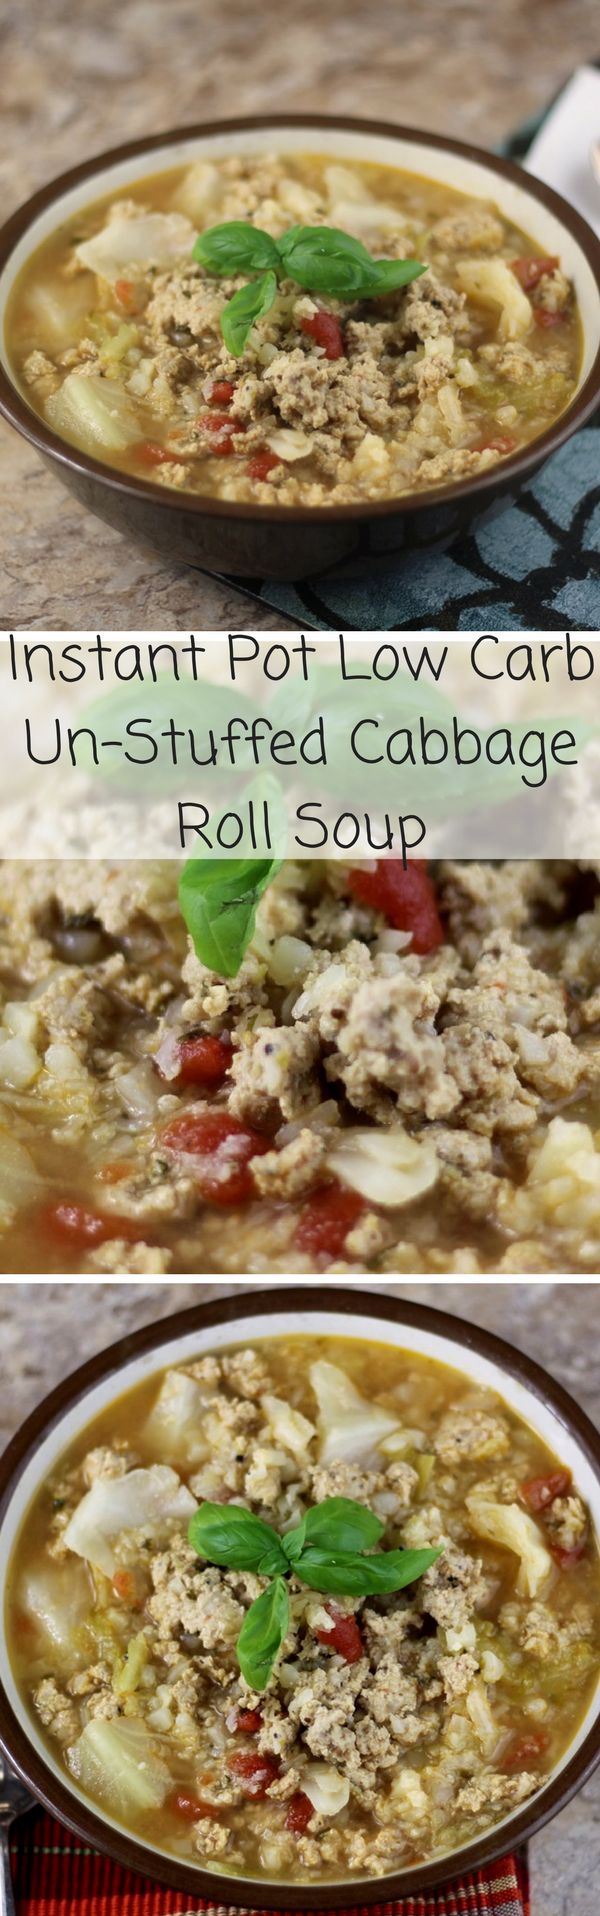 Instant Pot Low Carb Un-Stuffed Cabbage Roll Soup